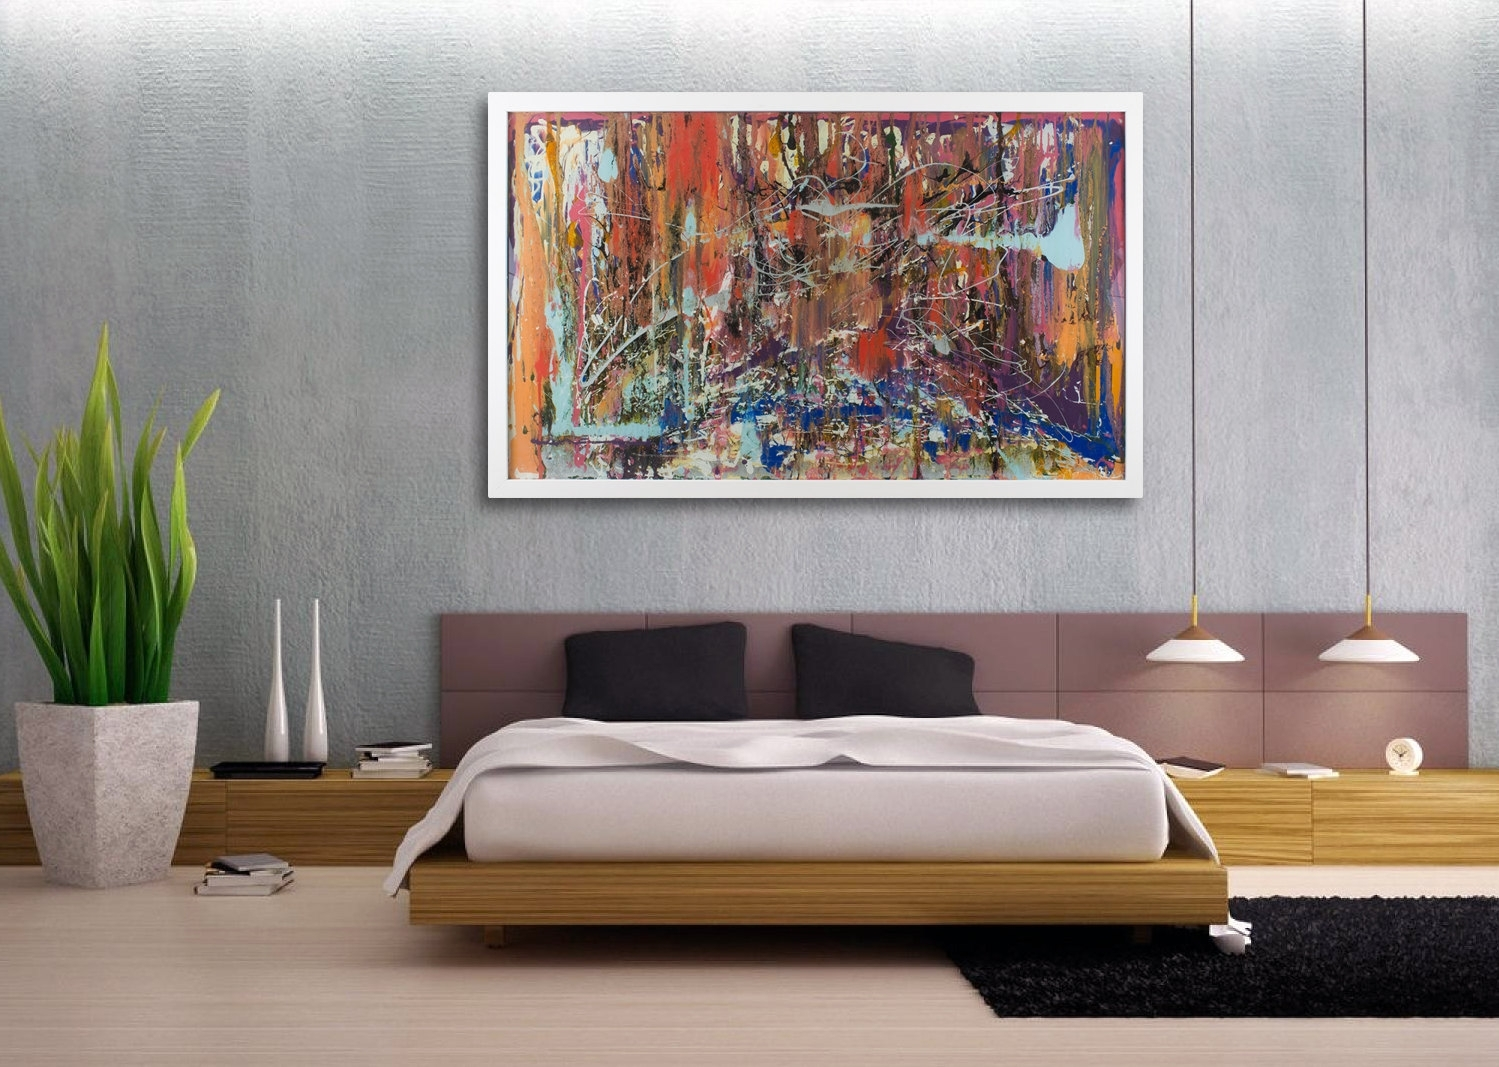 Innovative Way Modern Wall Decor Room — Joanne Russo Homesjoanne With Regard To Recent Abstract Wall Art For Bedroom (View 4 of 21)